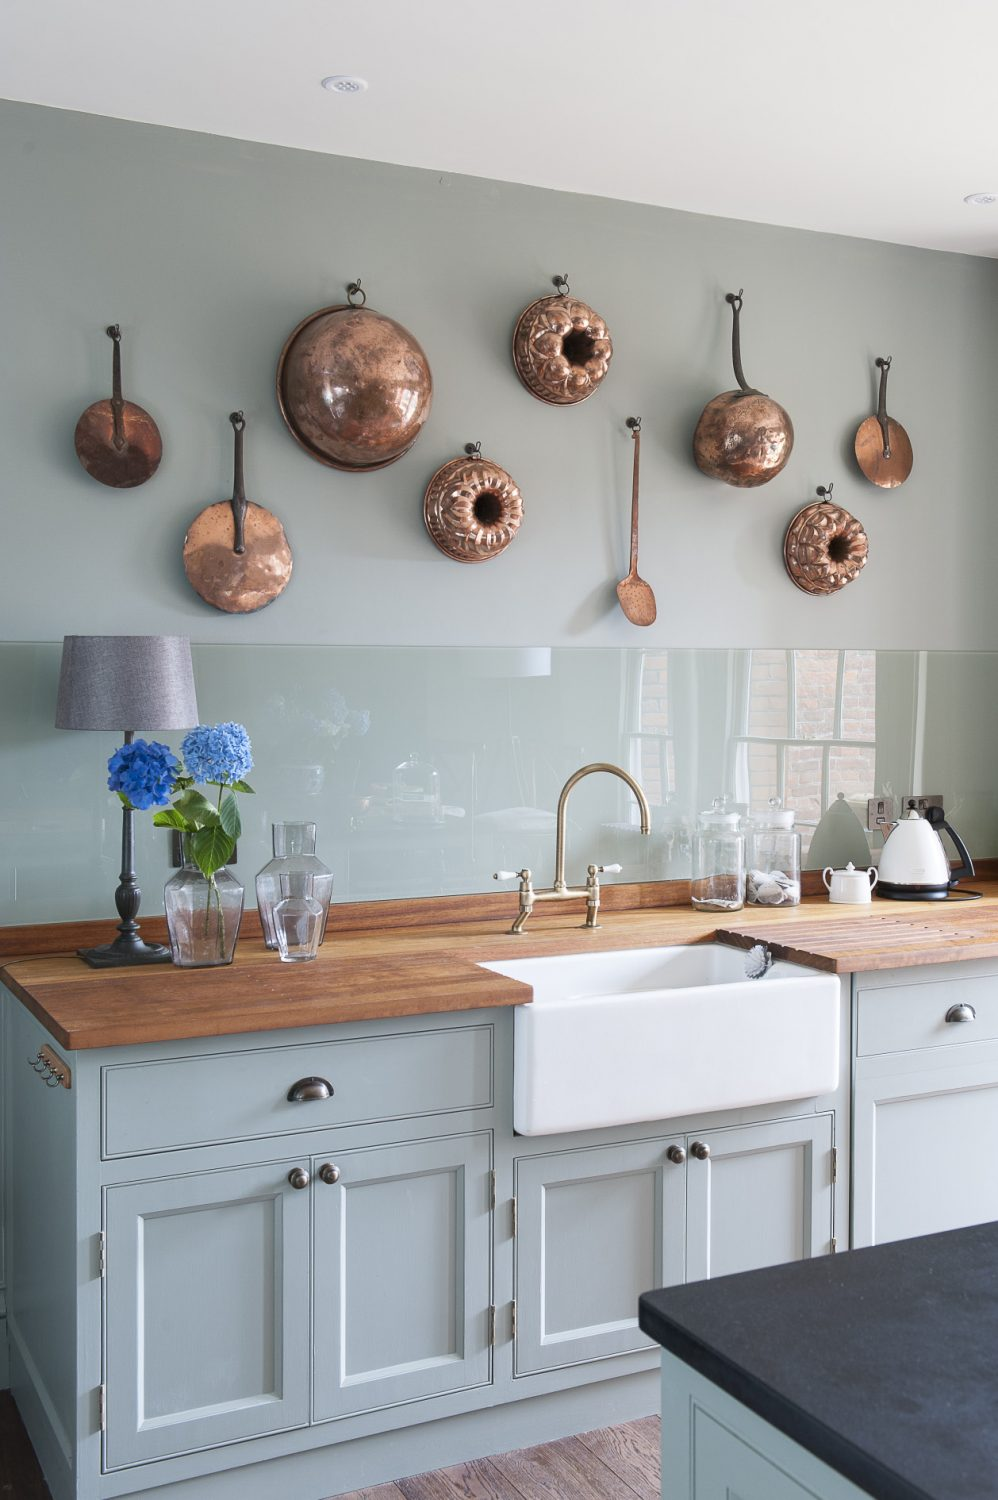 The shaker-style units and island in the kitchen were custom-built and painted in Pigeon by Farrow & Ball by the builders- BW May. The copper pans were from Ardingly